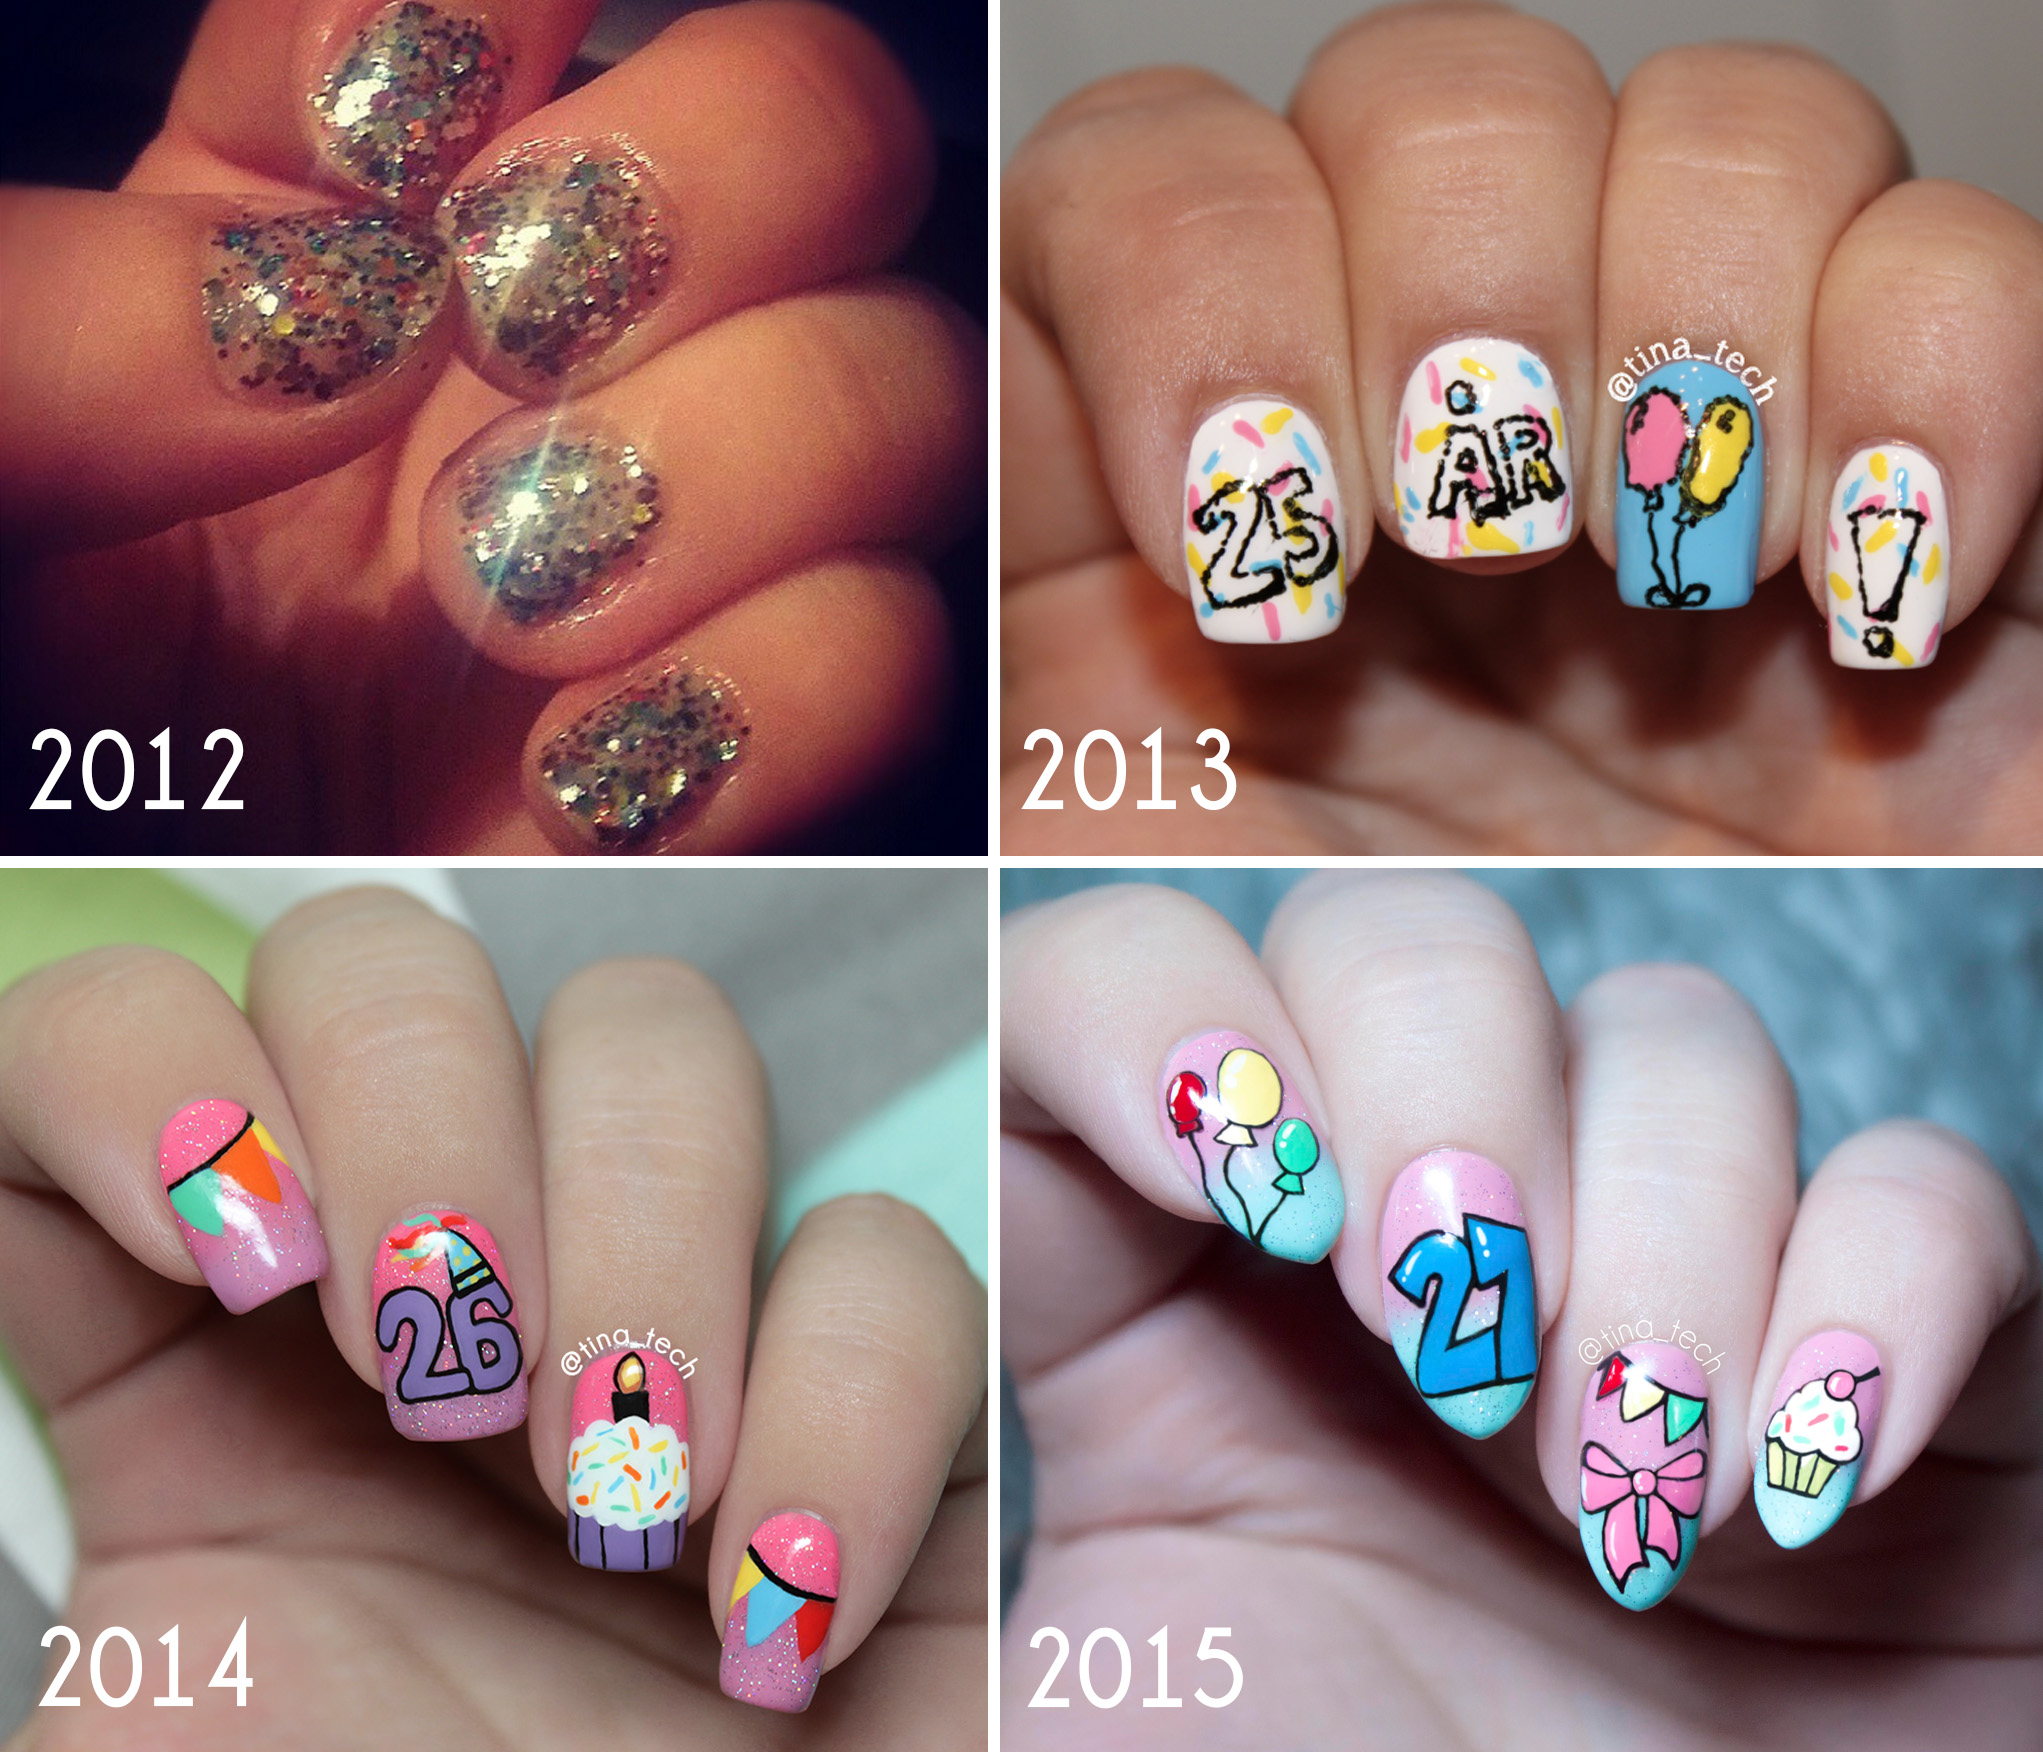 Birthday Nails - Then and Now